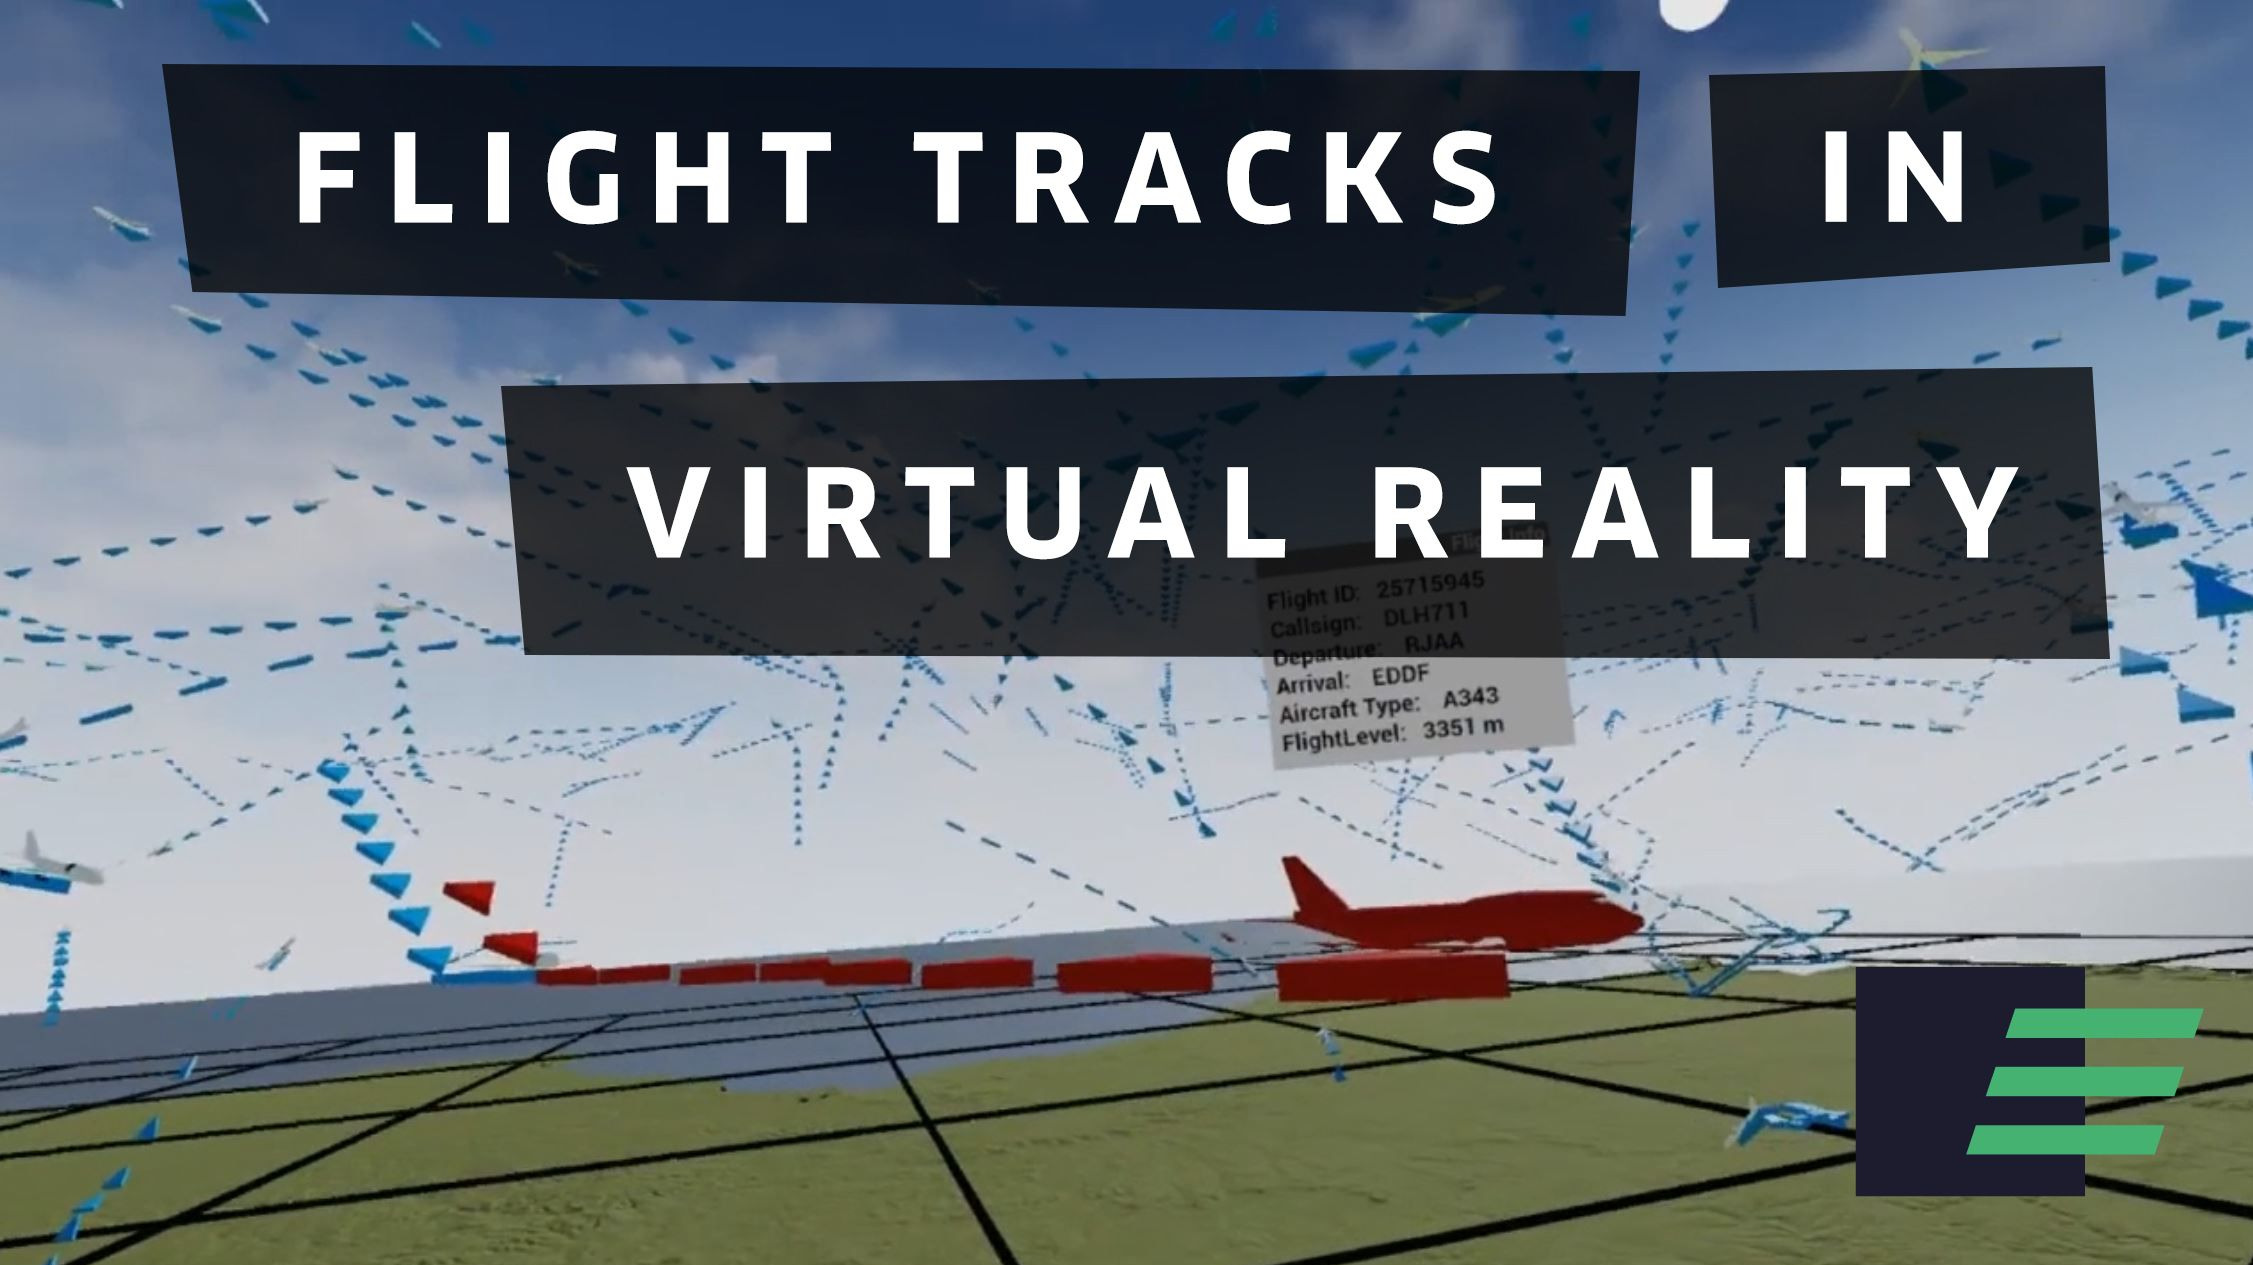 Flight Tracks in Virtual Reality